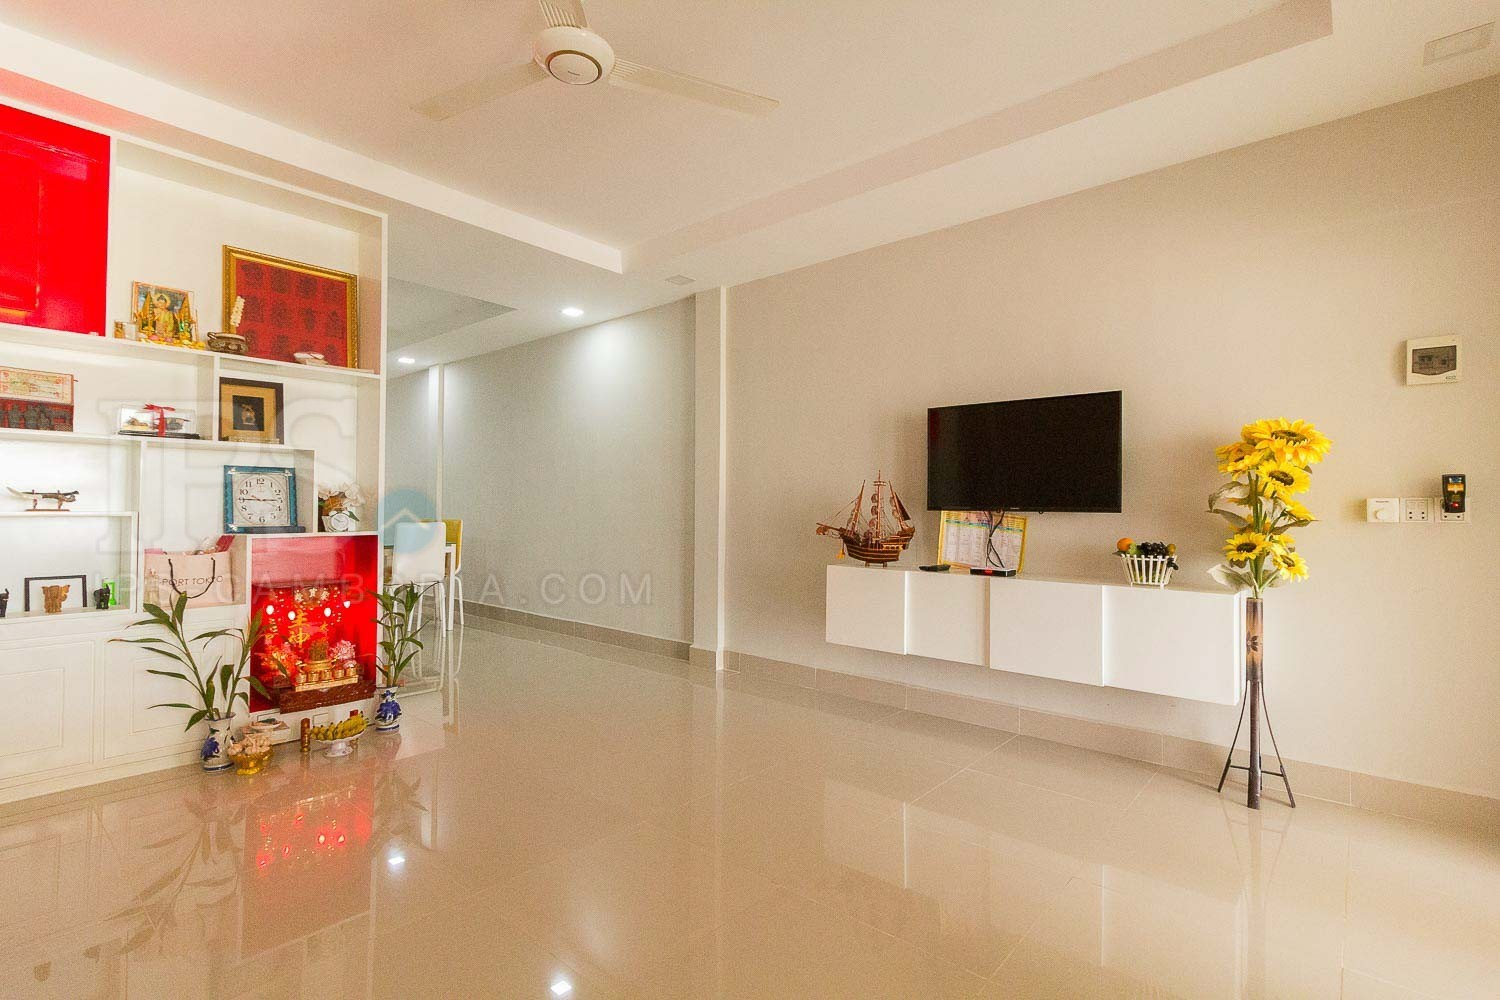 3 Bedroom Flat  For Sale - Bakong District, Siem Reap